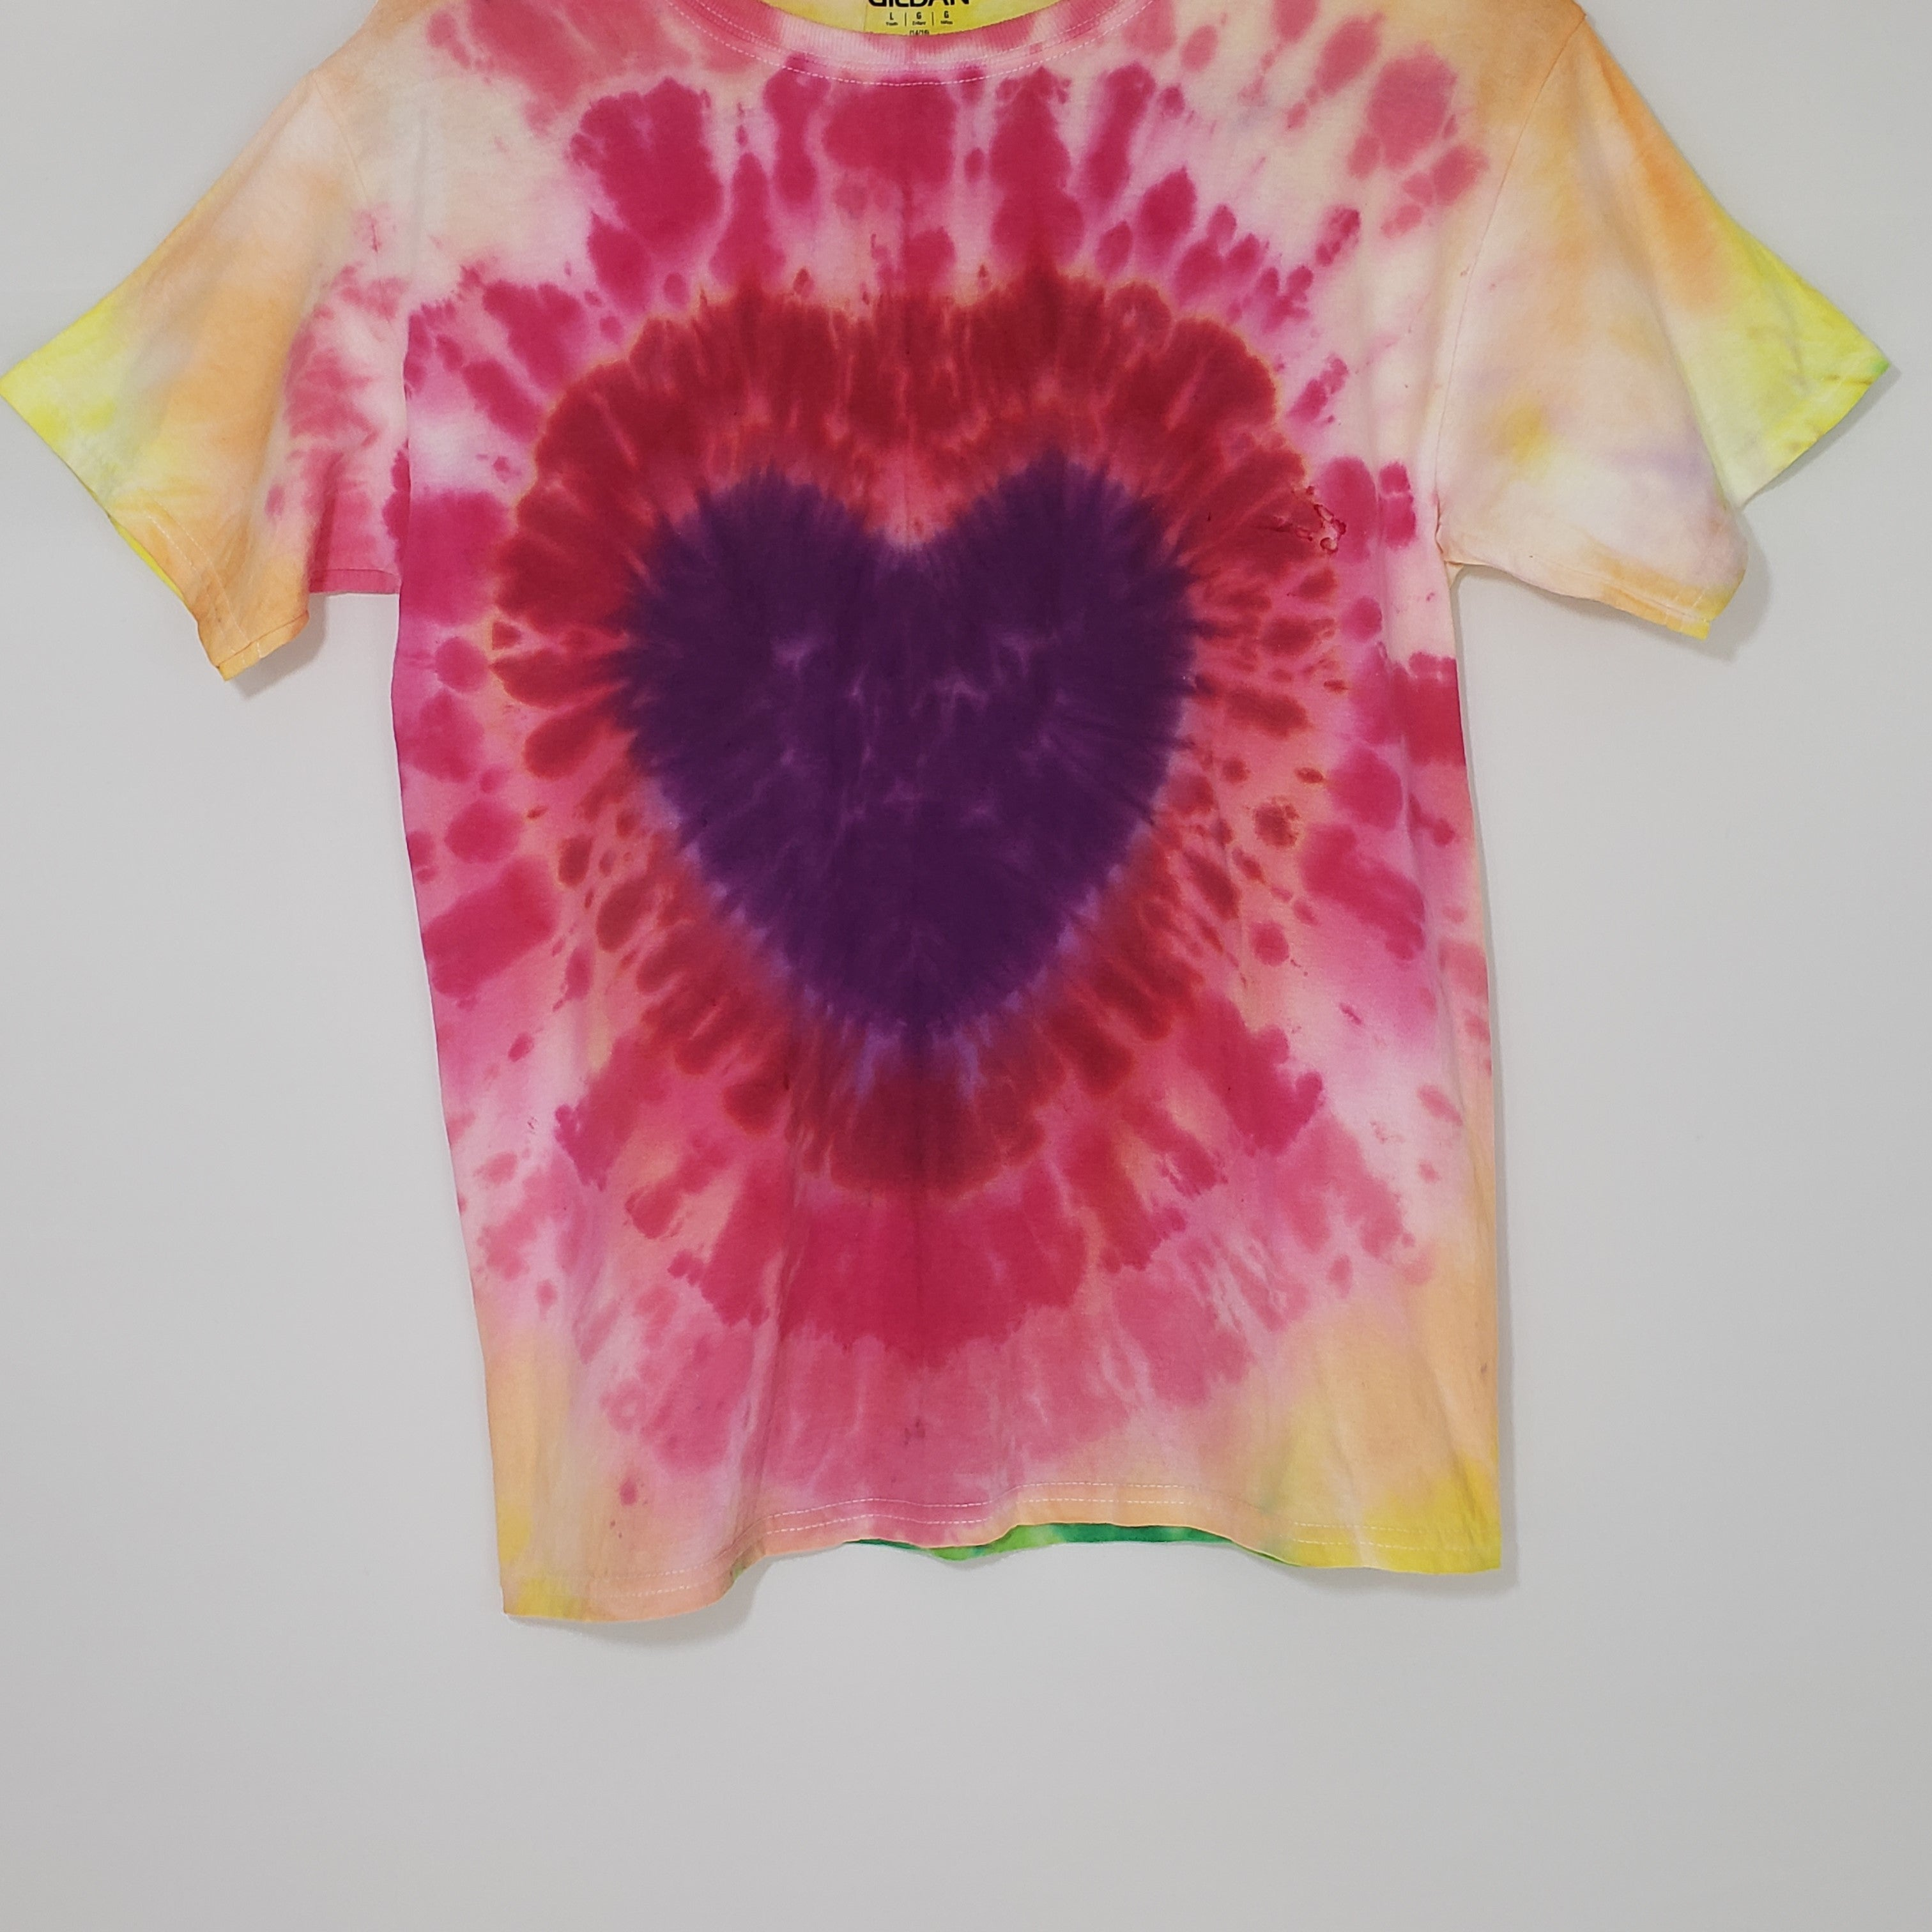 Tie-dye Bright, Fun & Colorful Shirts in Youth Size - Houzz of DVA Boutique